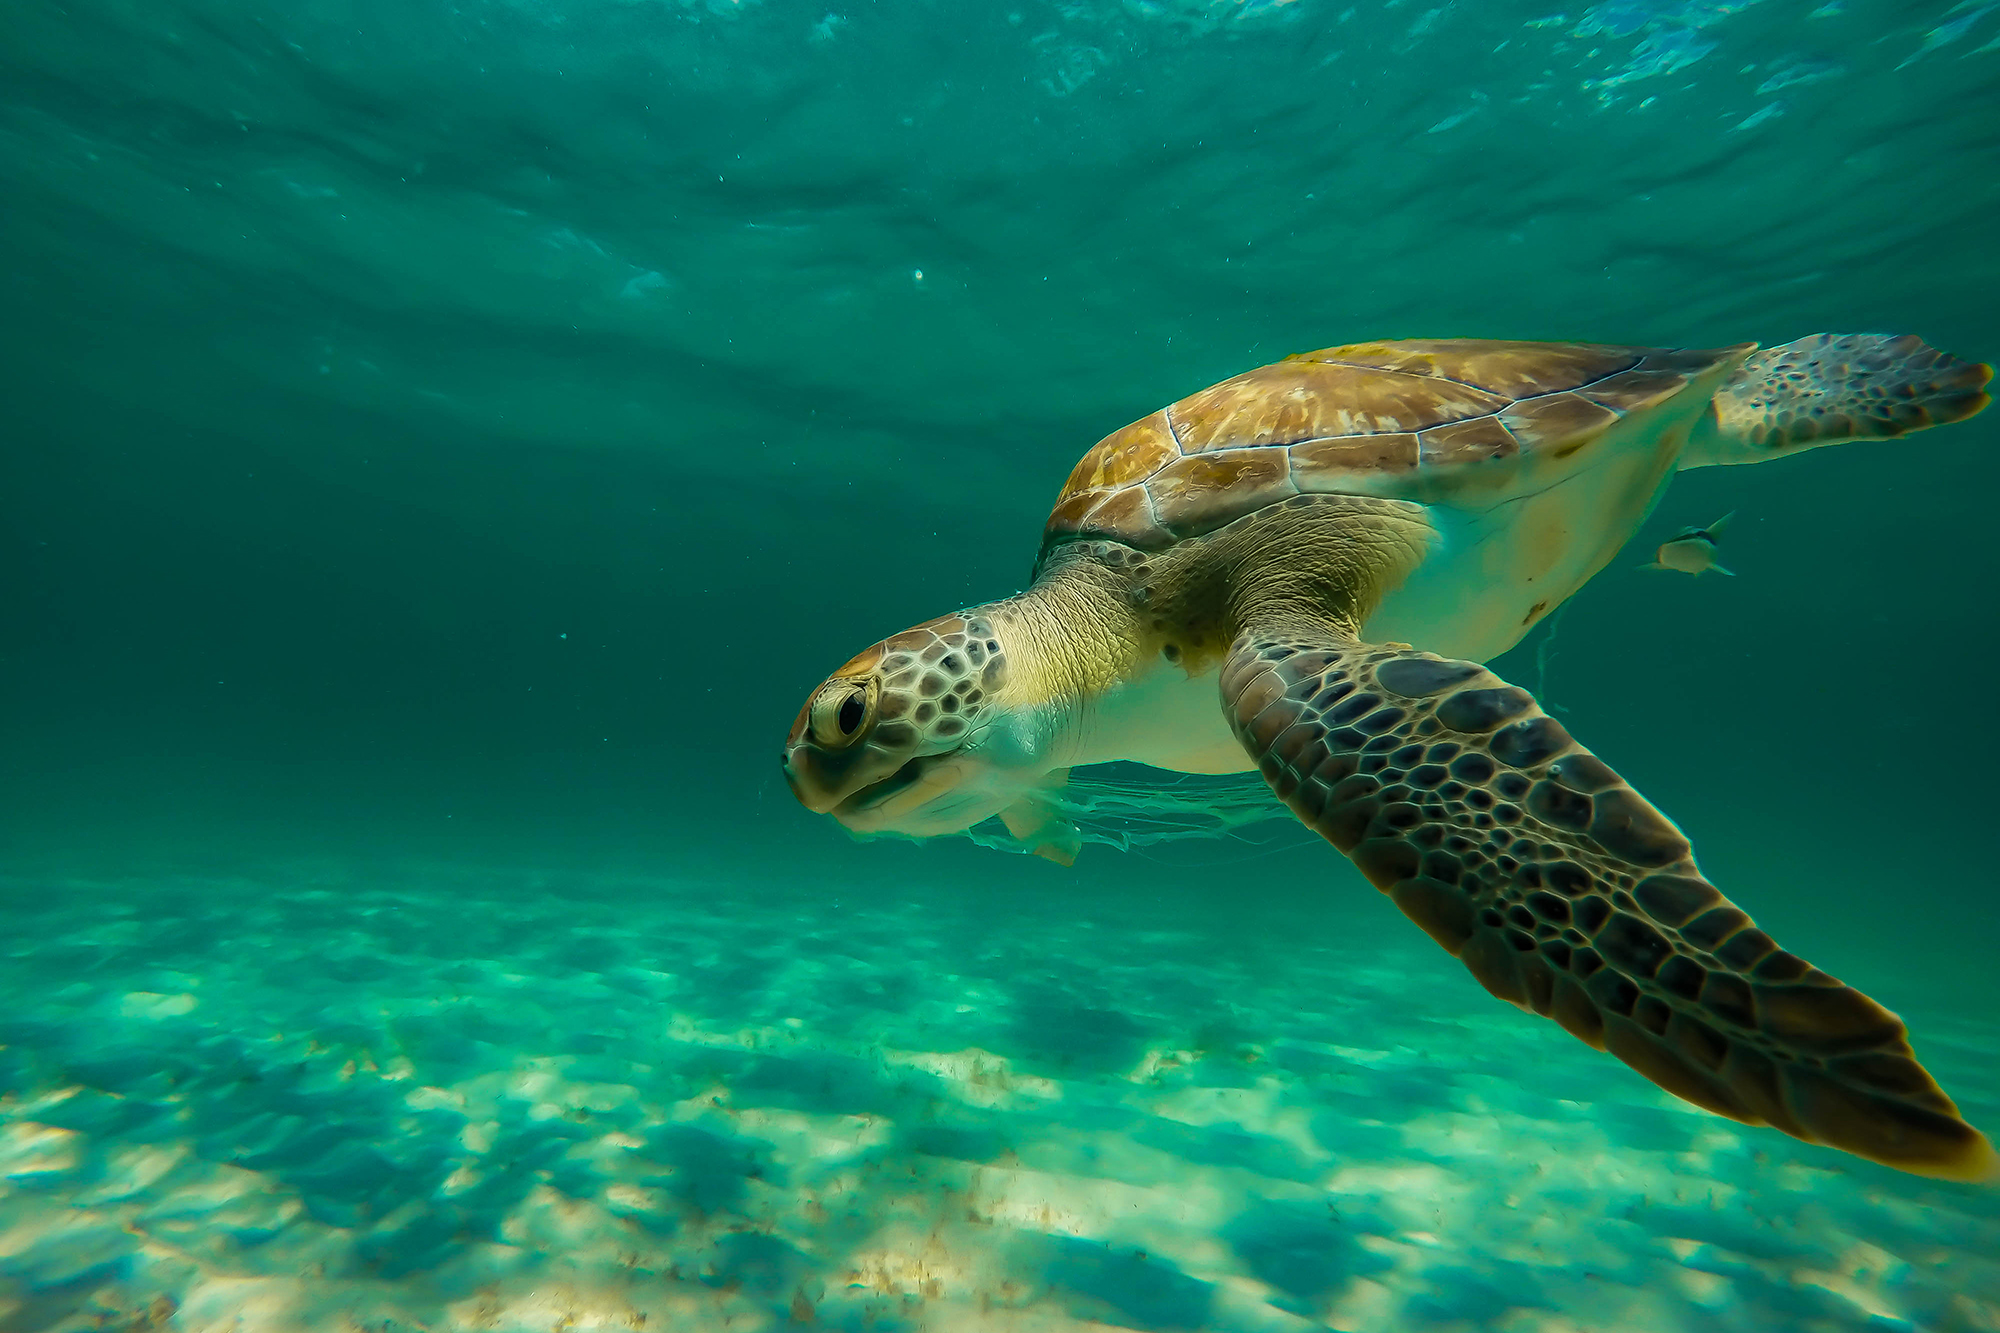 A sea turtle swimming underwater in the Gulf of Mexico